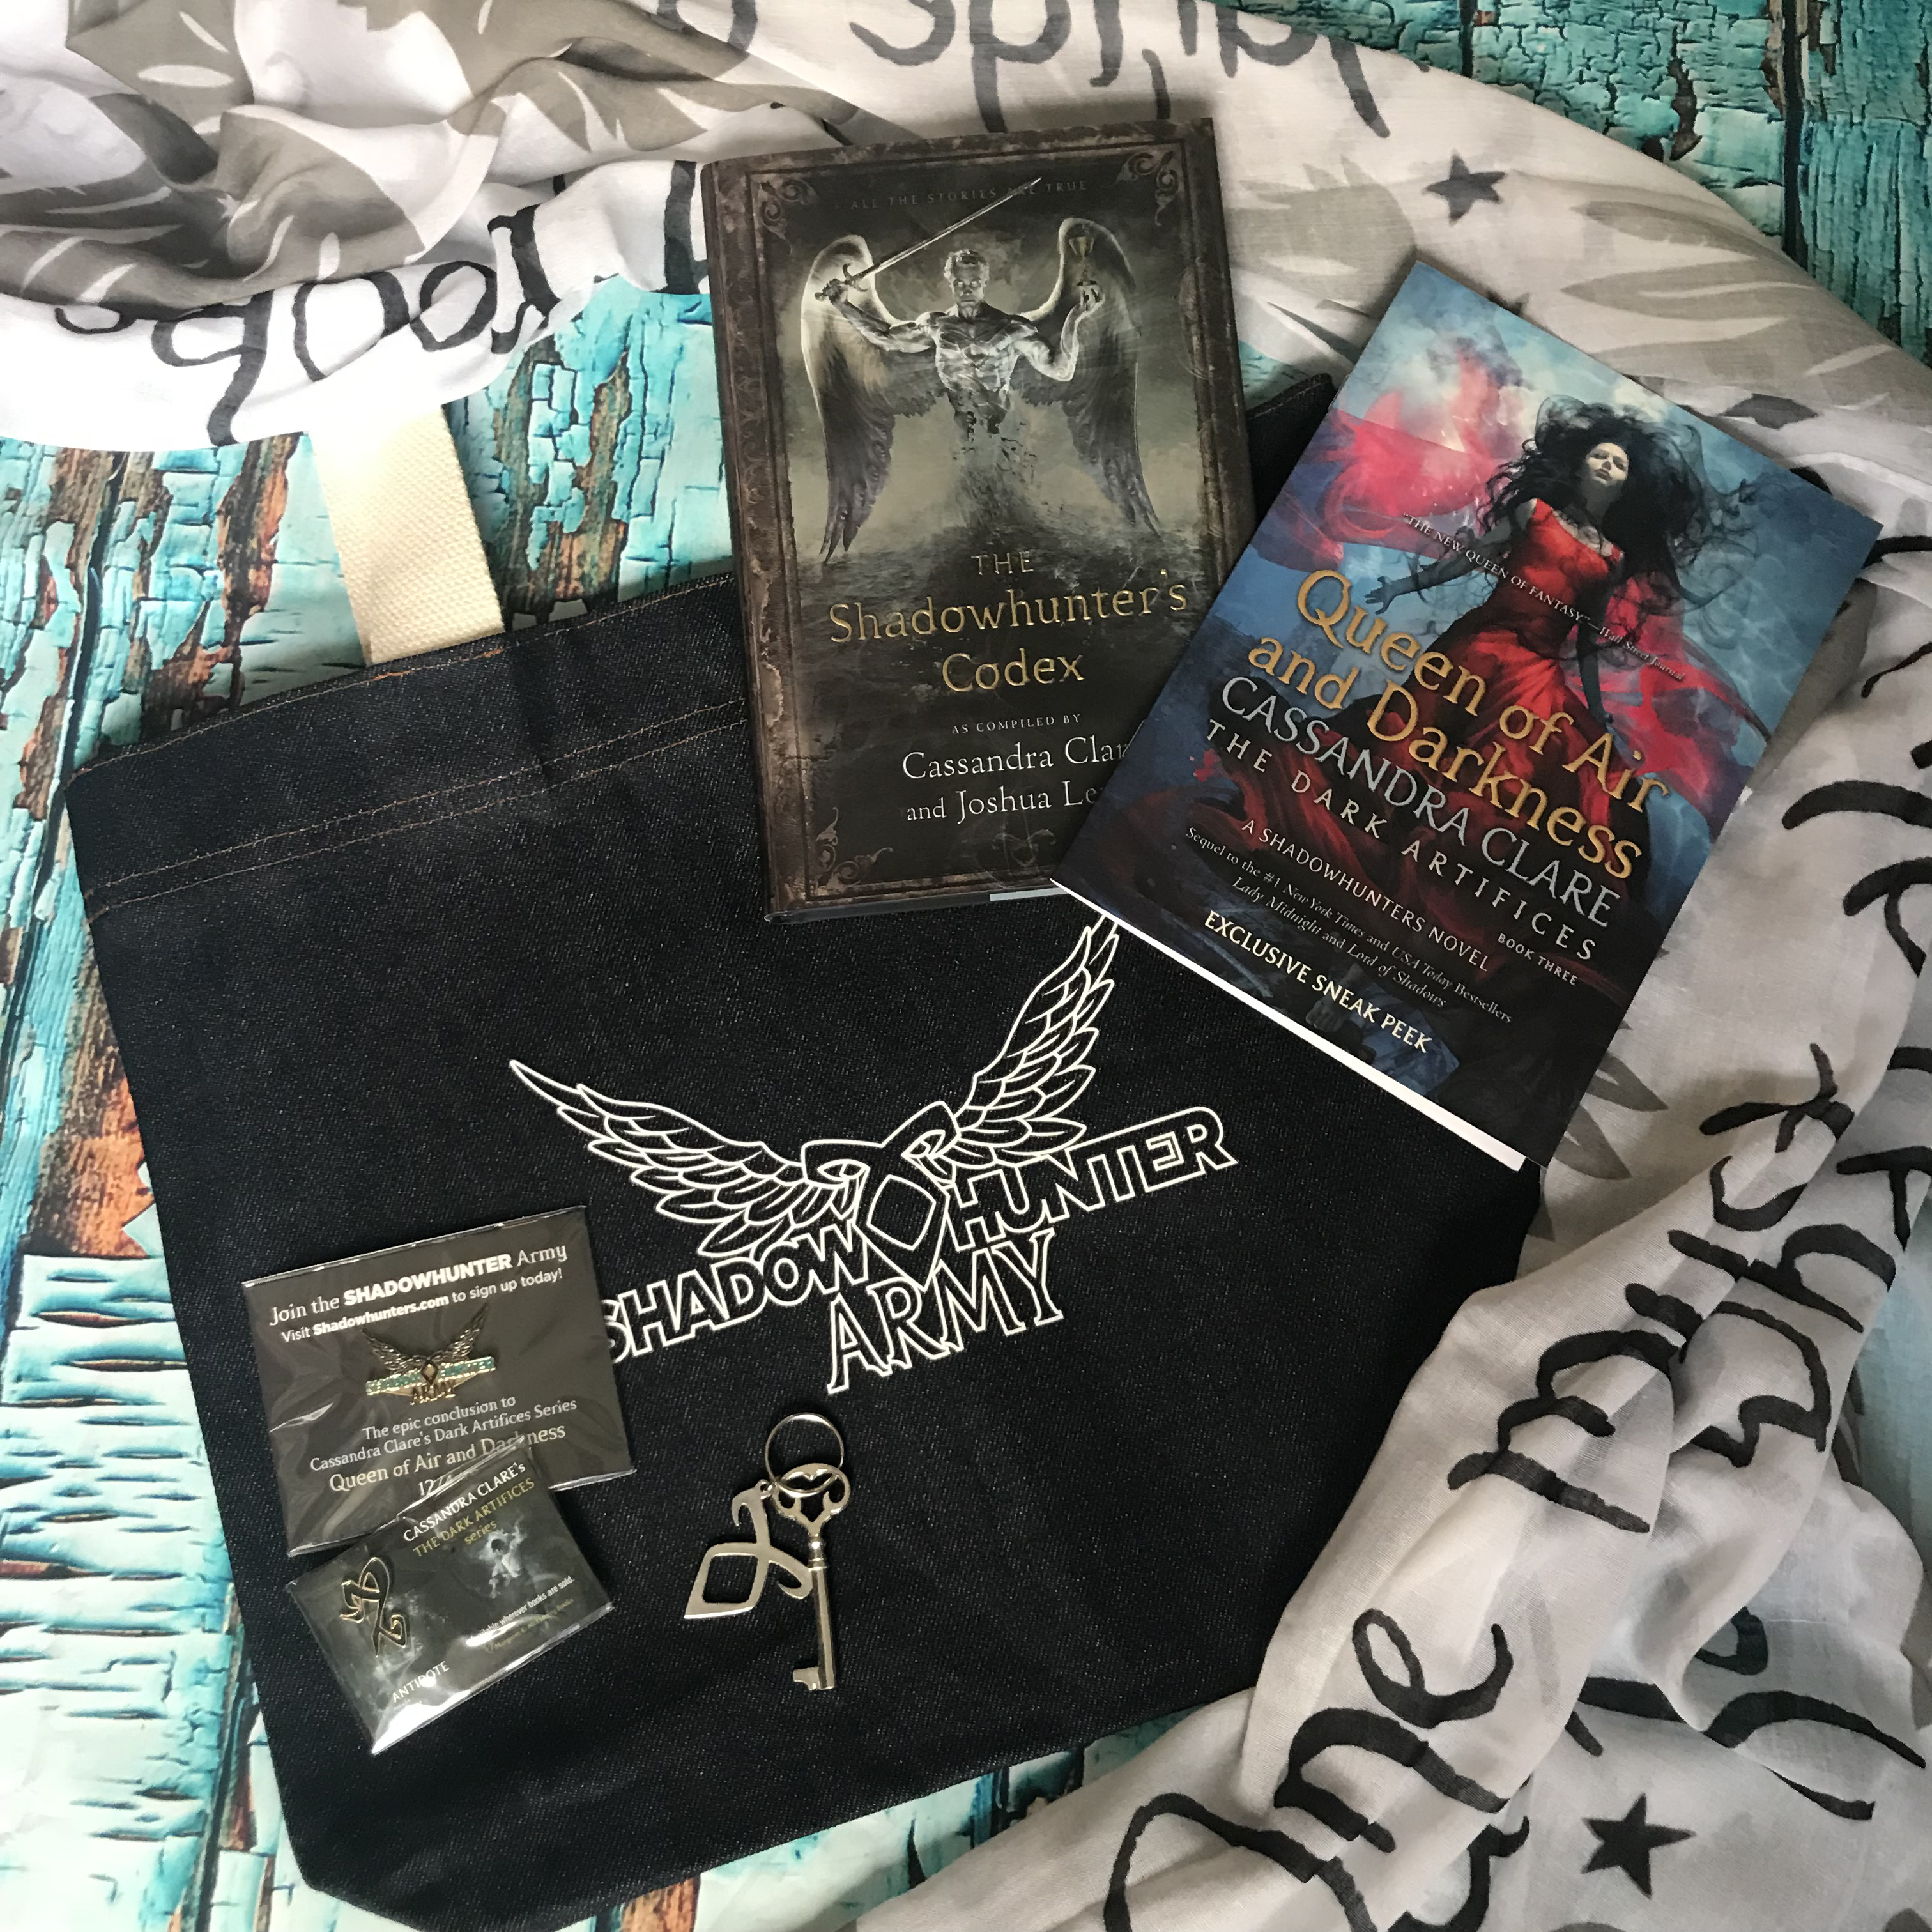 Shadowhunter Army prize pack